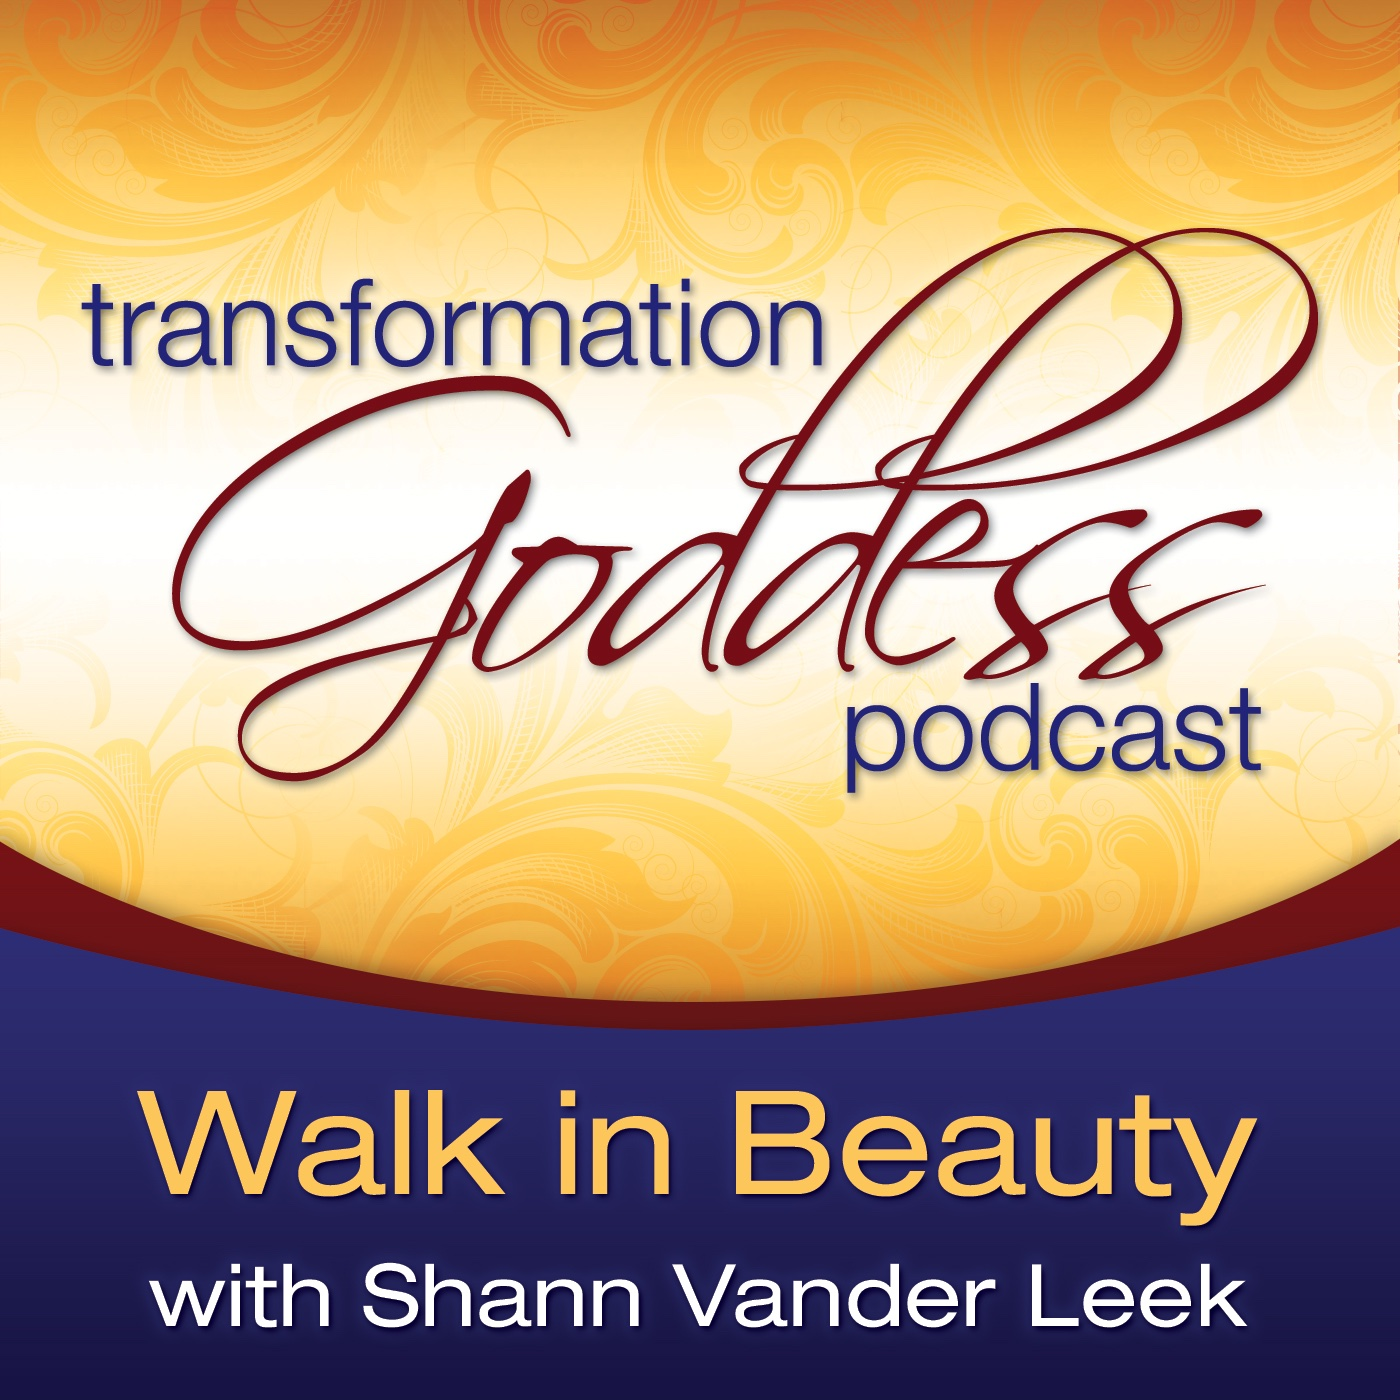 Transformation Goddess Podcast - Walk in Beauty with Shann Vander Leek